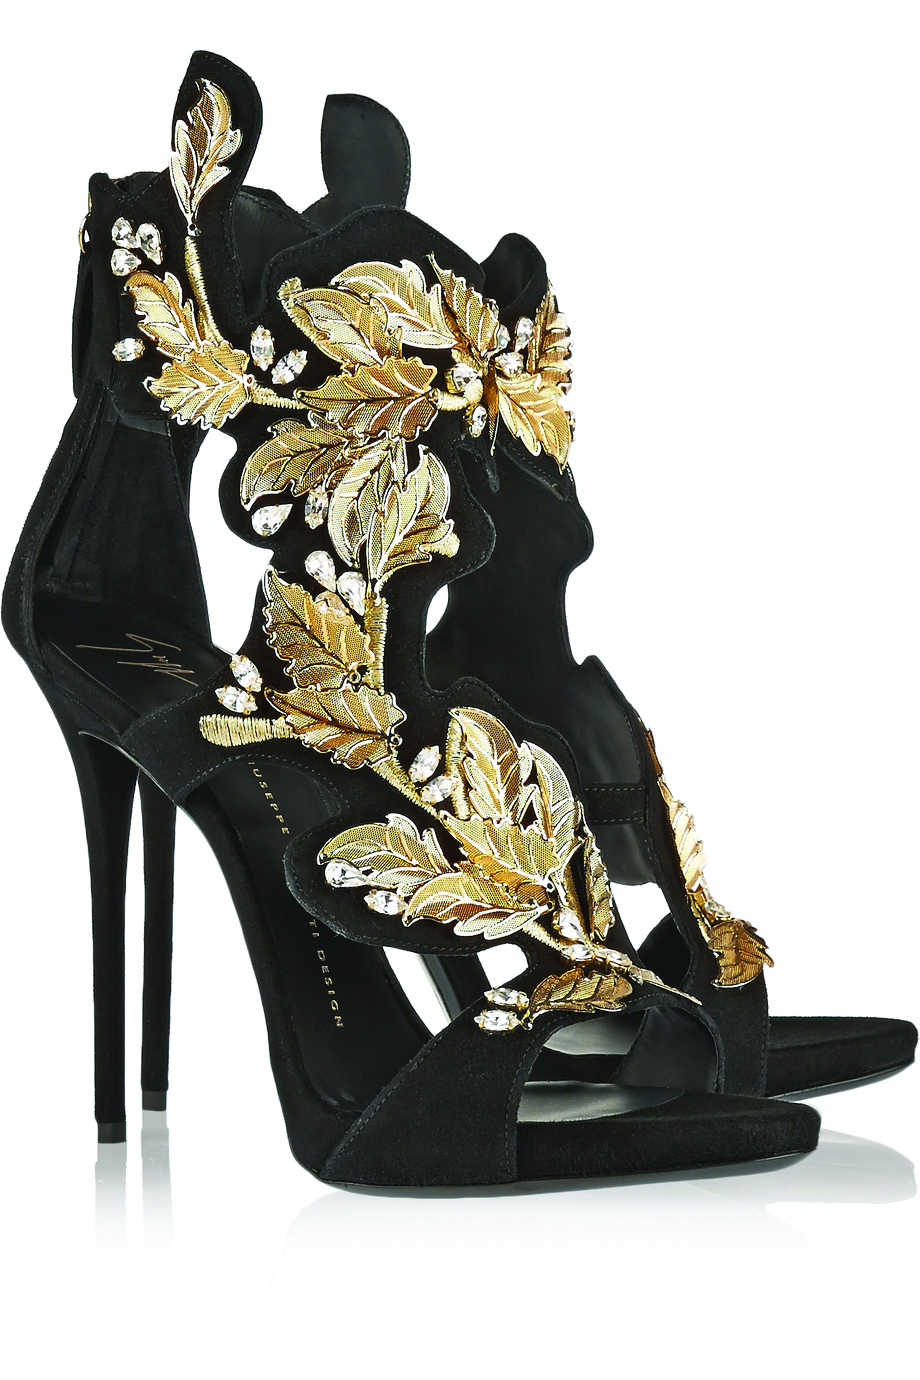 Giuseppe Zanotti Open Toe Platform Sandals. $2,954.80 Lush tendrils of golden vines appear to climb up these open toe sandals. Let this footwear take centre stage and pair with a simple, sleek black dress. At Bloomingdales.com